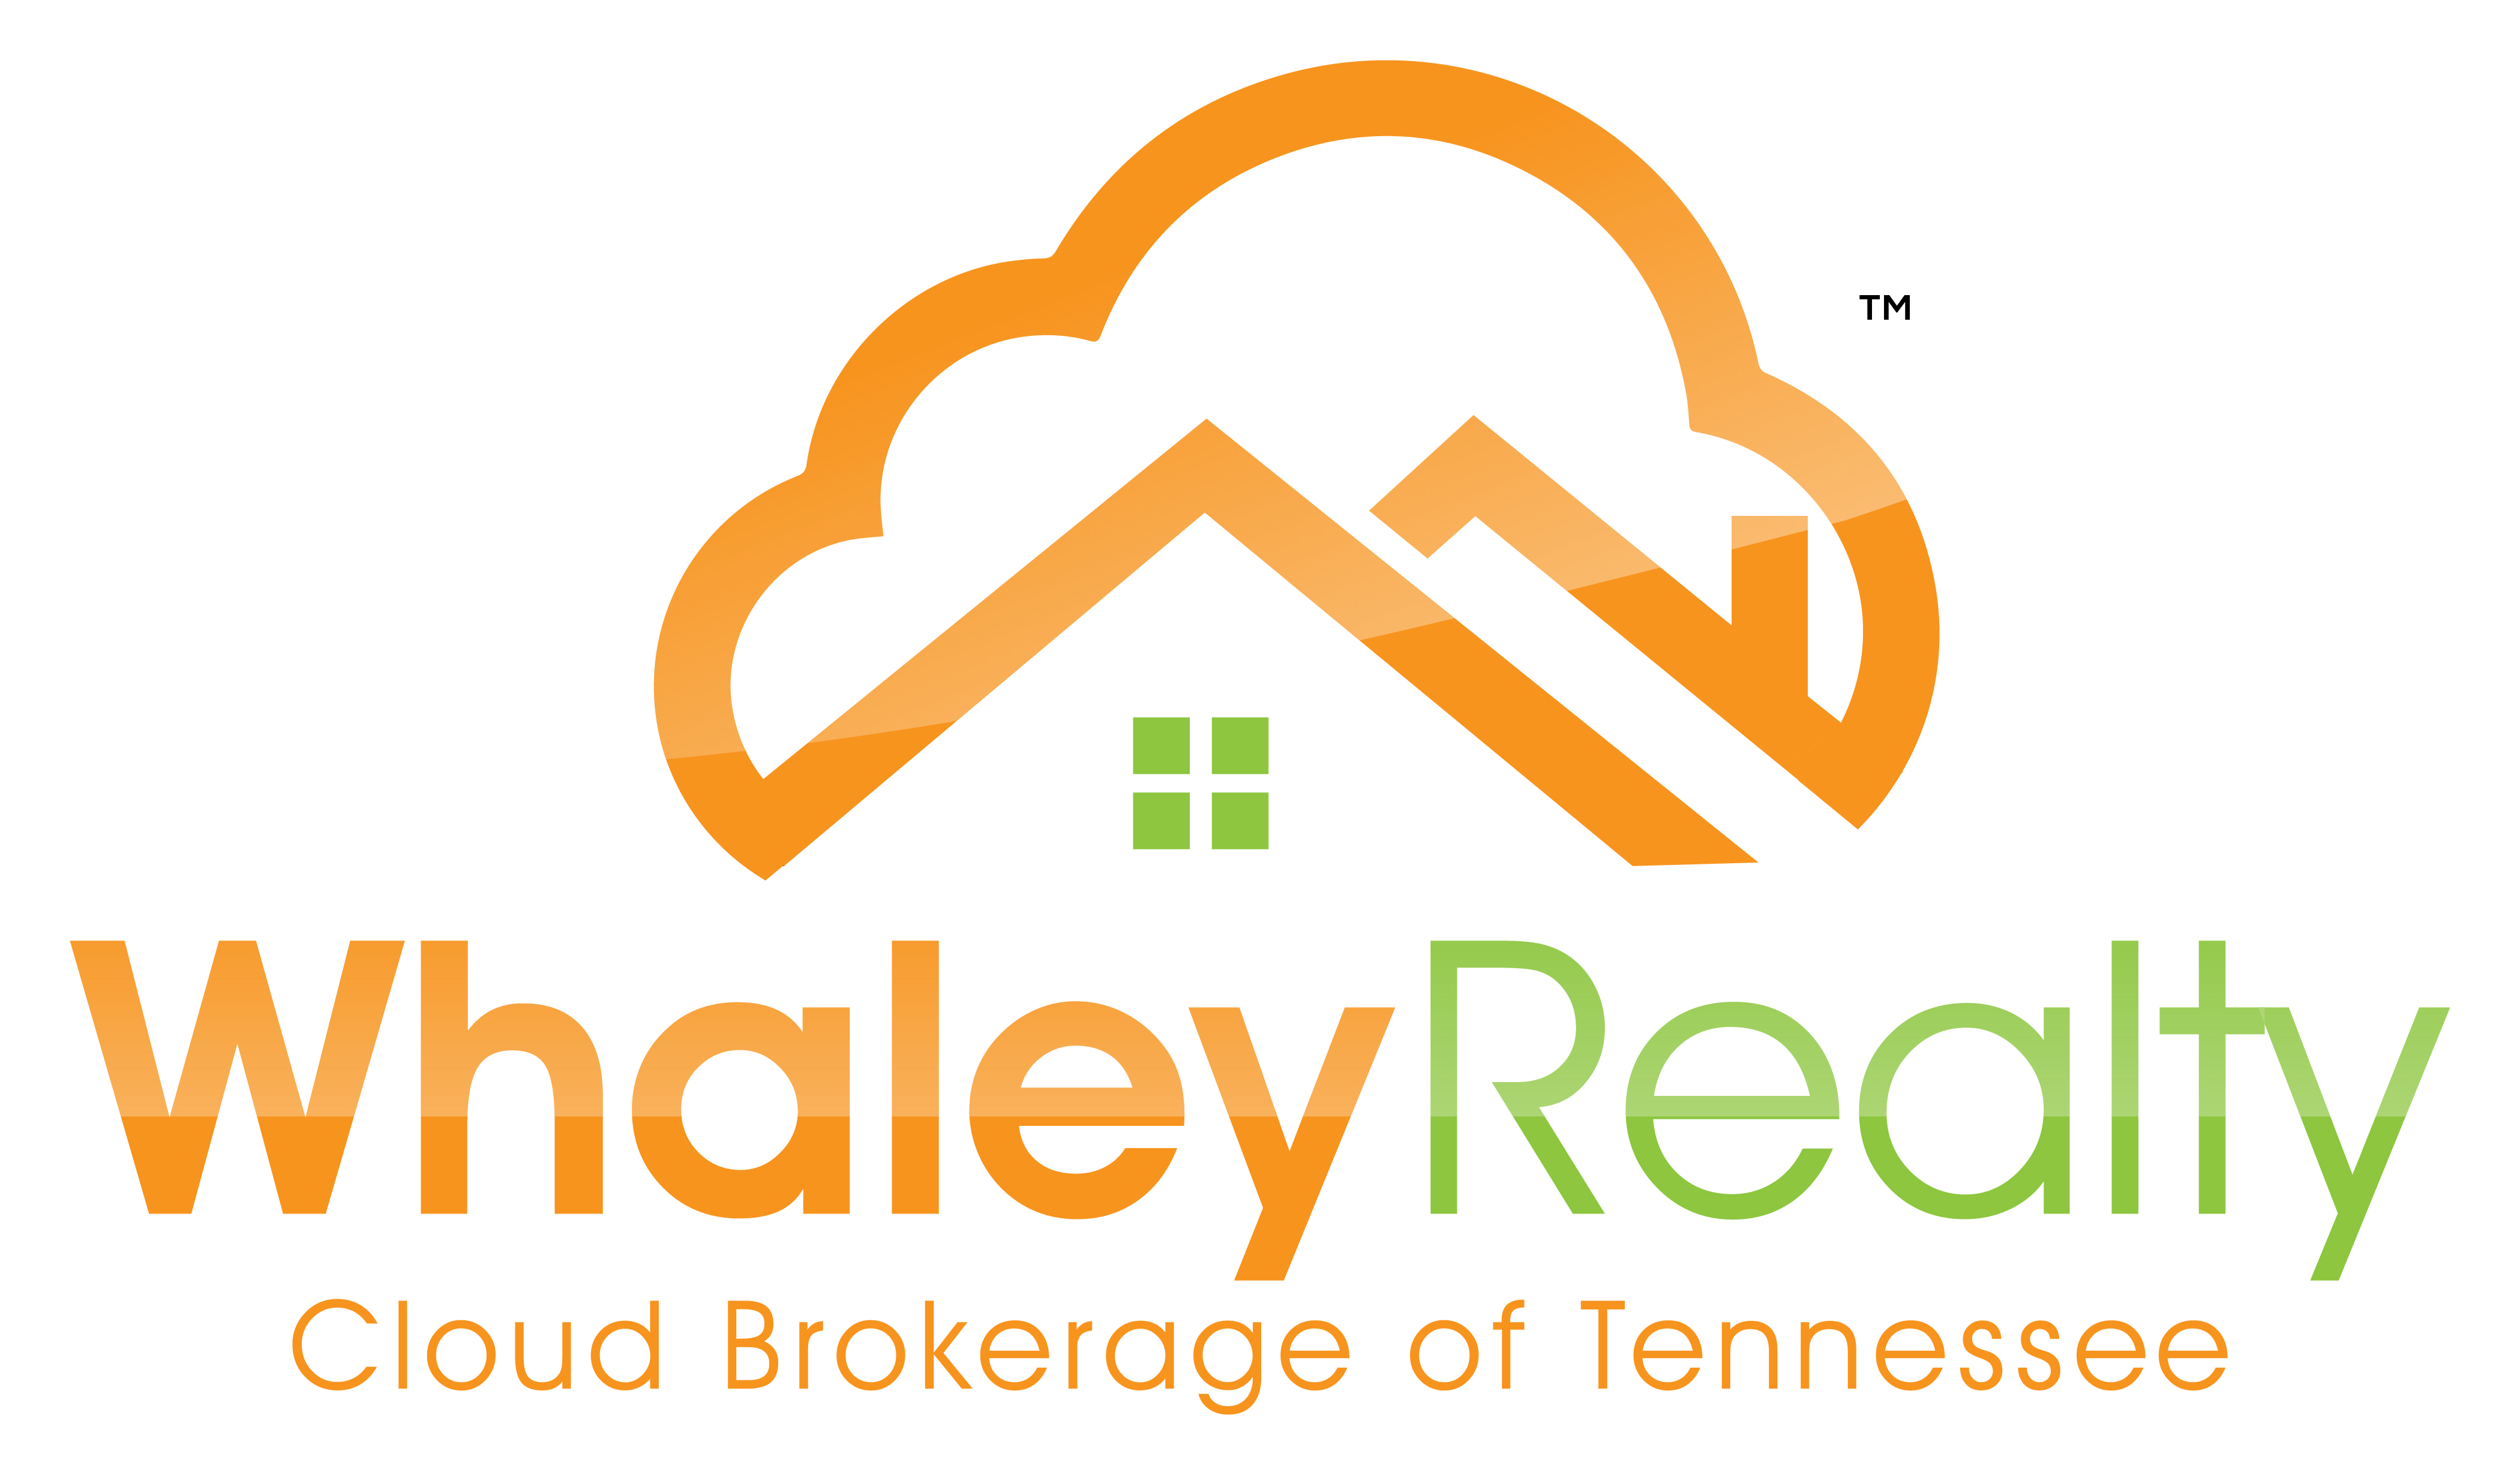 Whaley Realty CRL